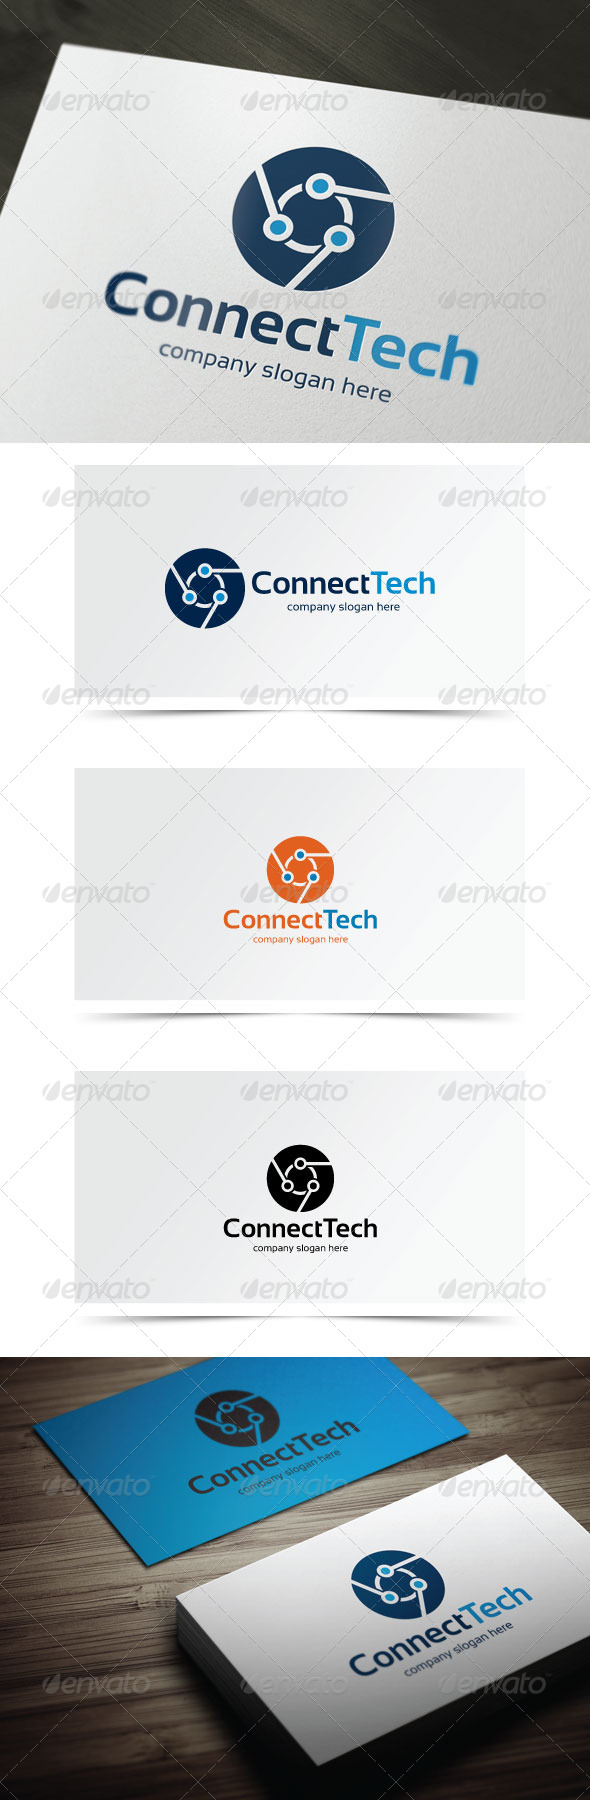 GraphicRiver Connect Tech 6021443